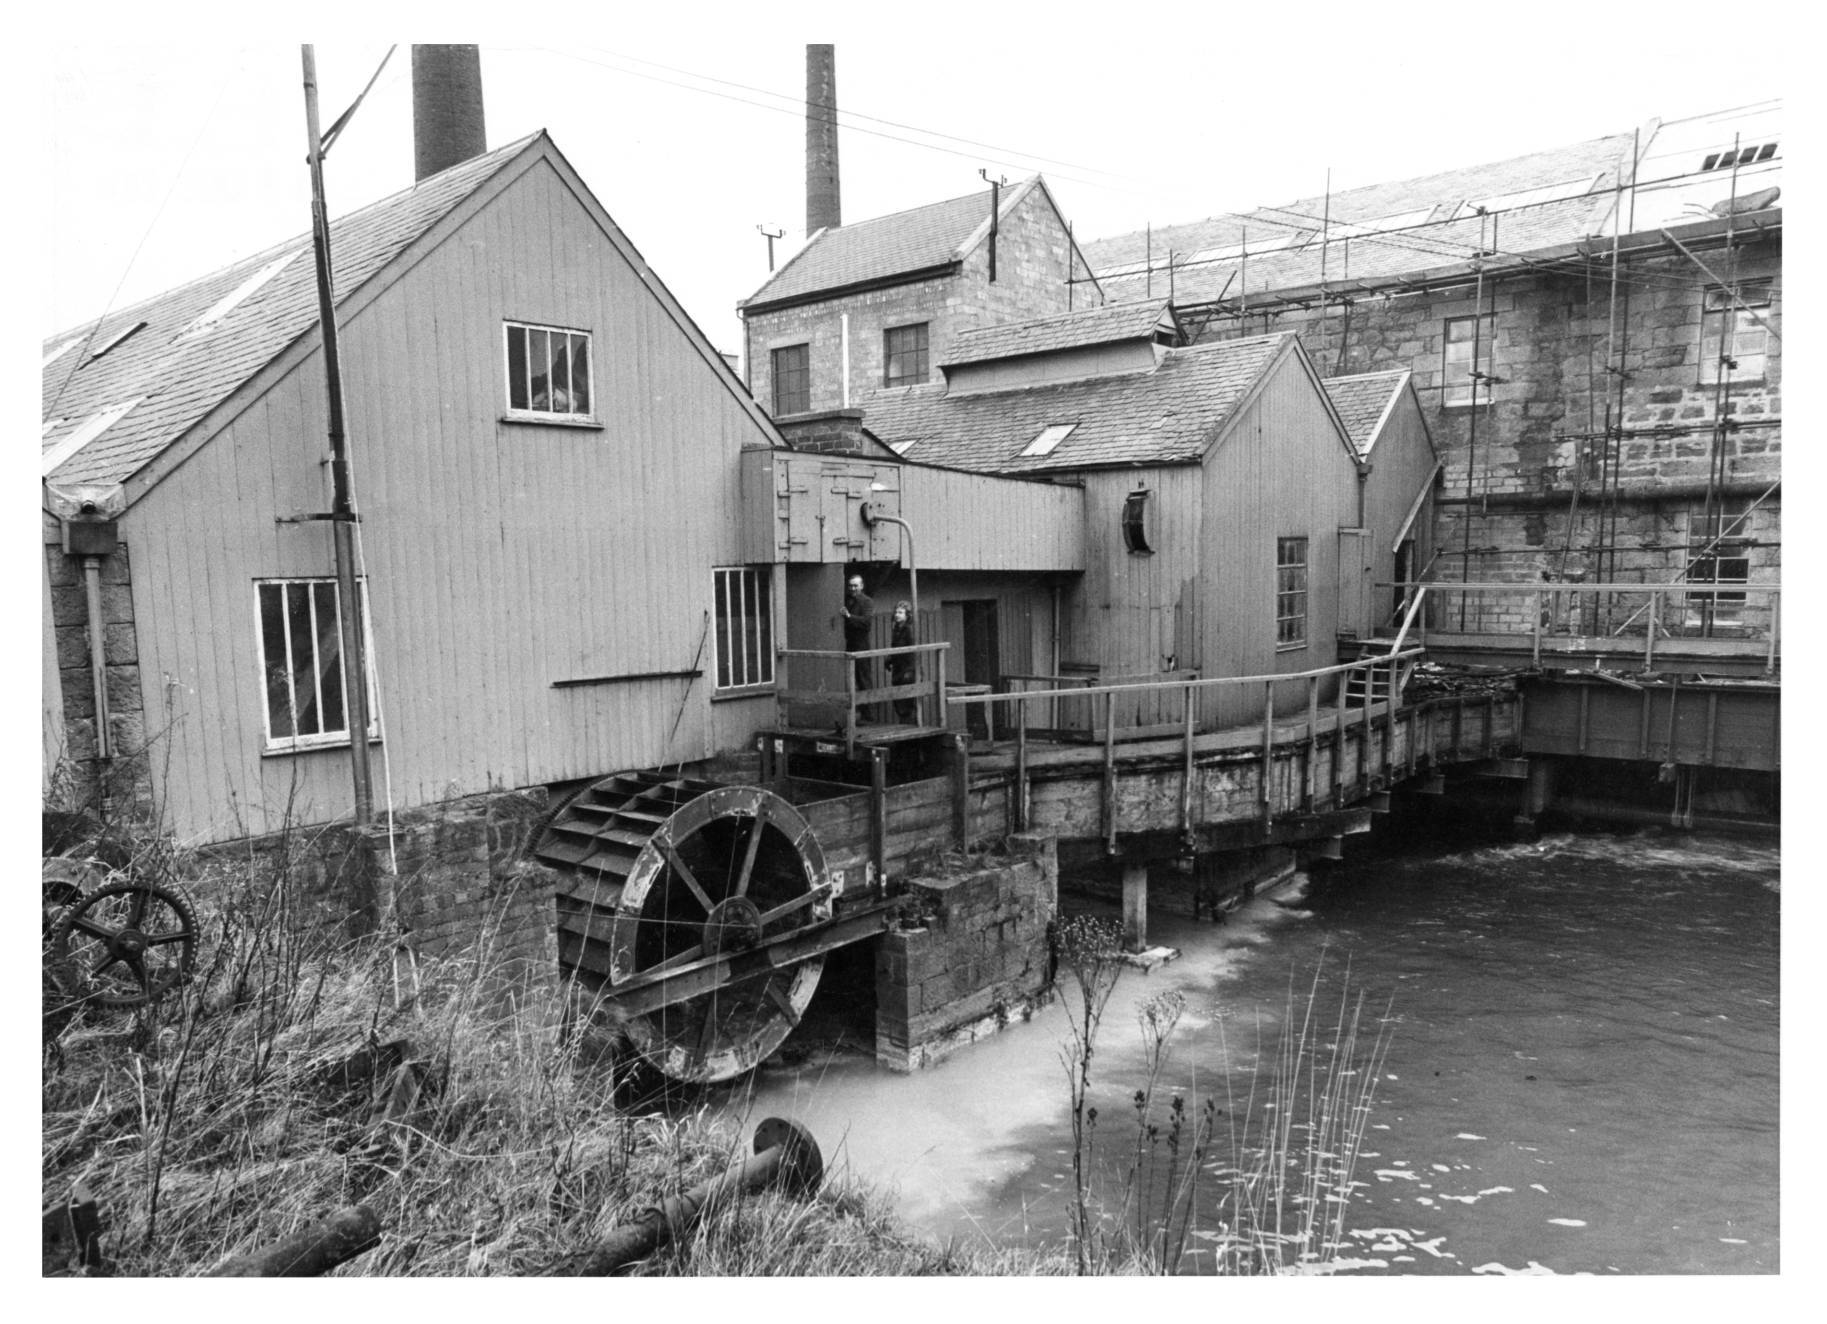 The Thomas Tait mill at Inverurie invested heavily in up-to-date machinery, but still had it's water wheel.